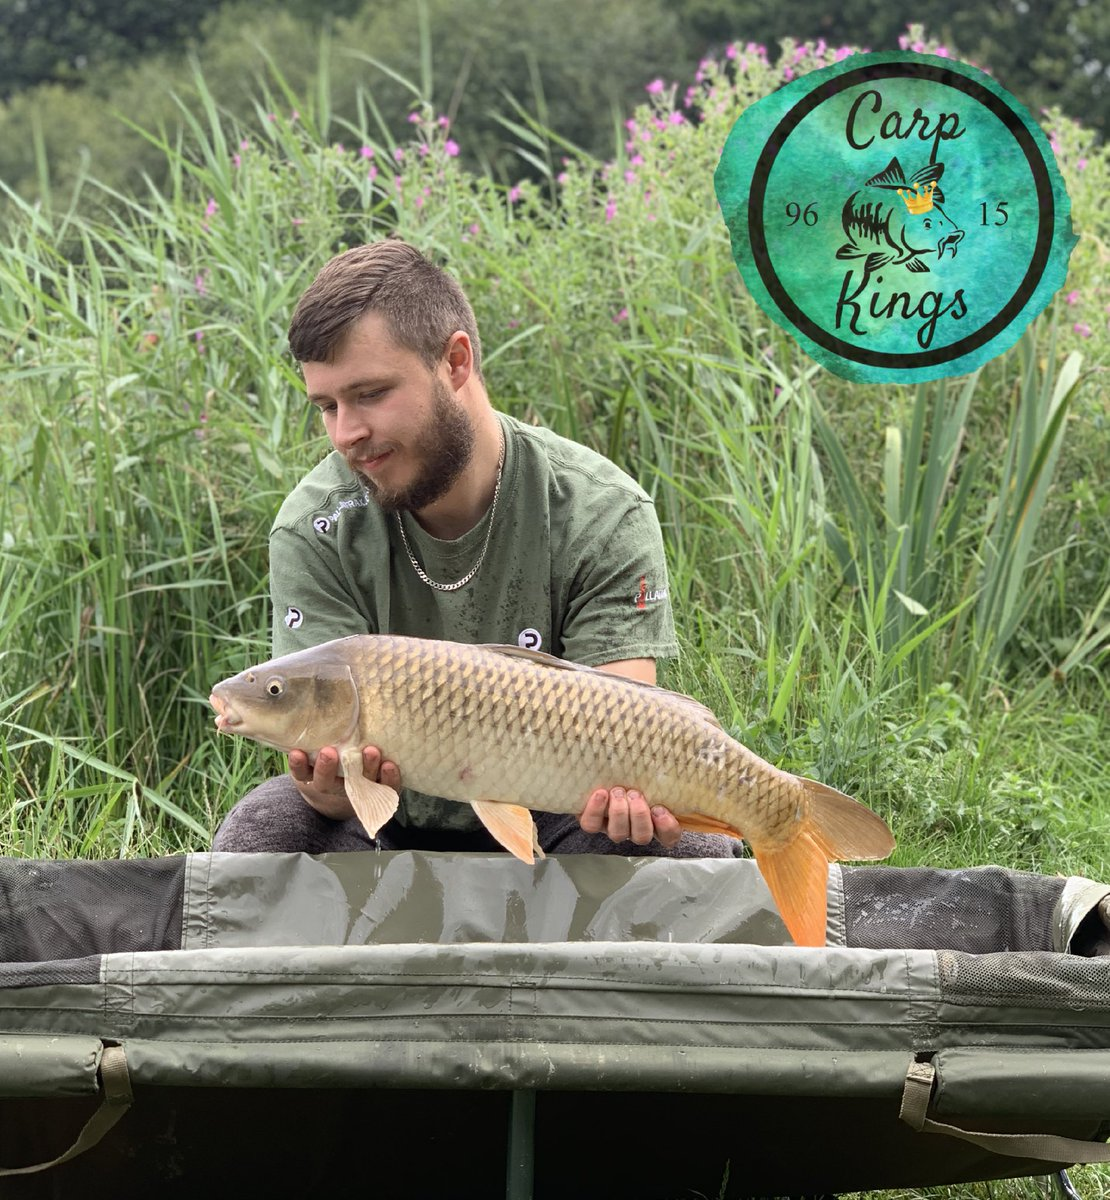 Lovely <b>Common Carp</b> #carpkings #carp #carpy #carpfishing https://t.co/absYpWD8KP